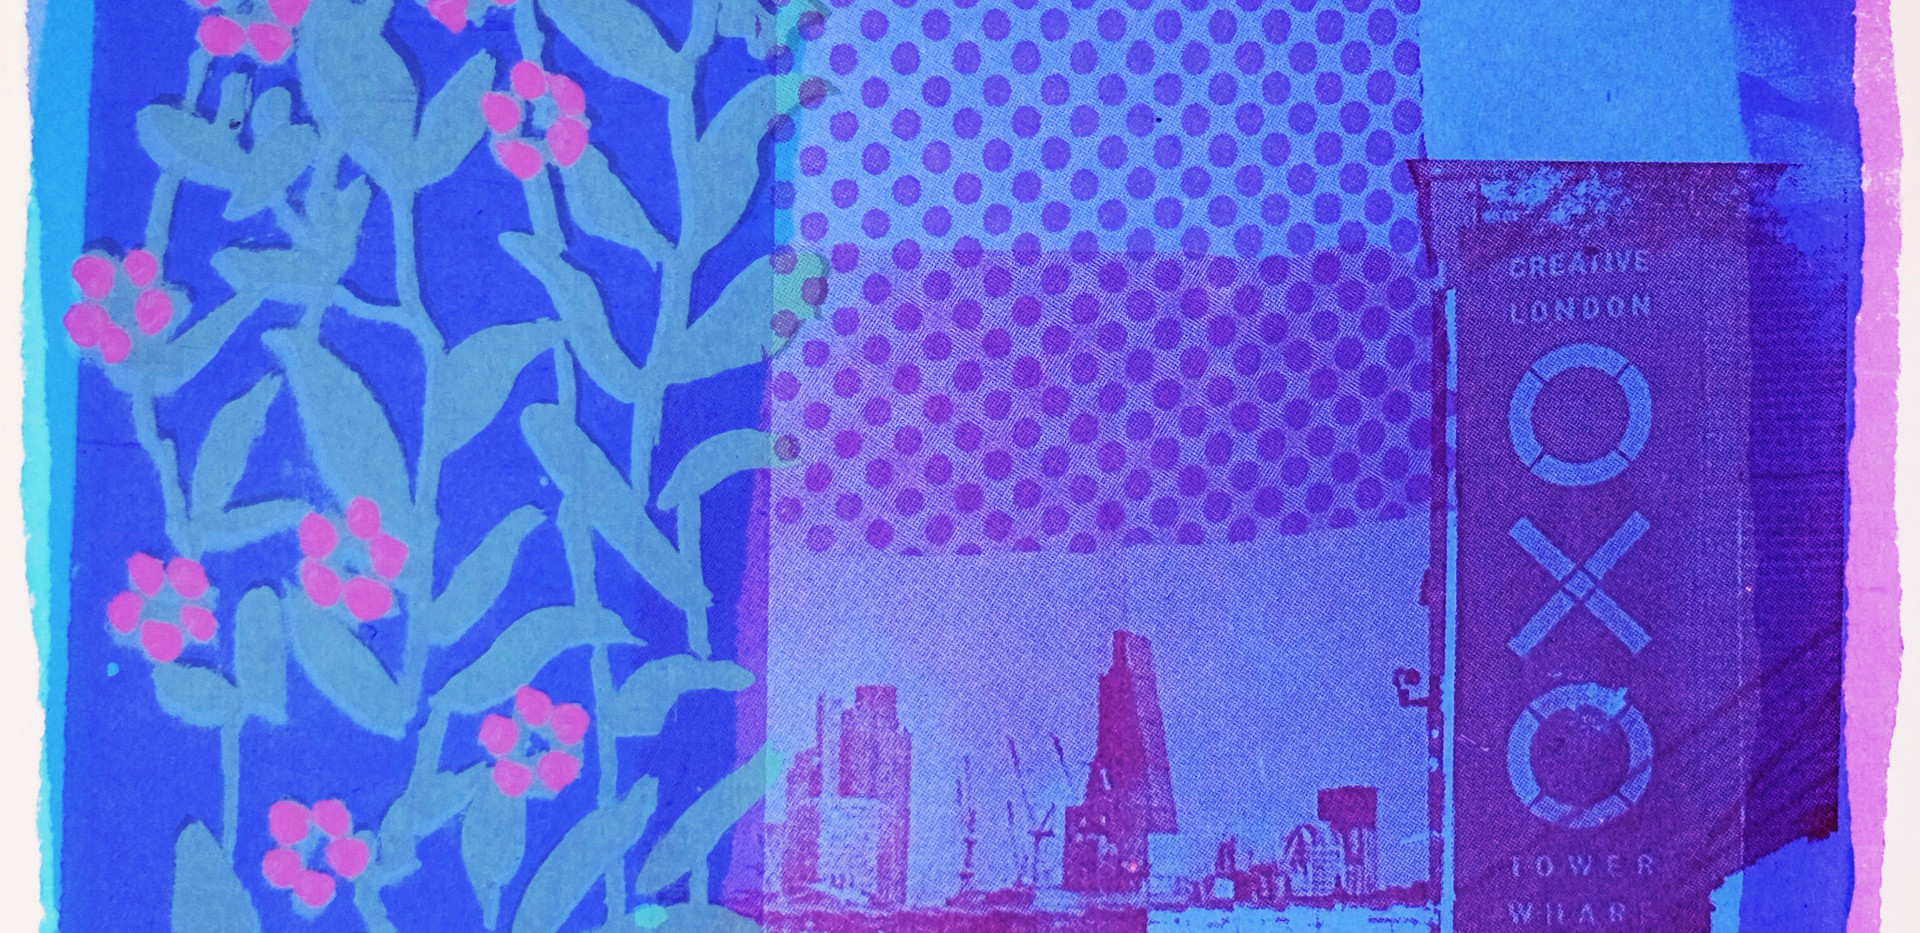 oxo tower and flowers JPG